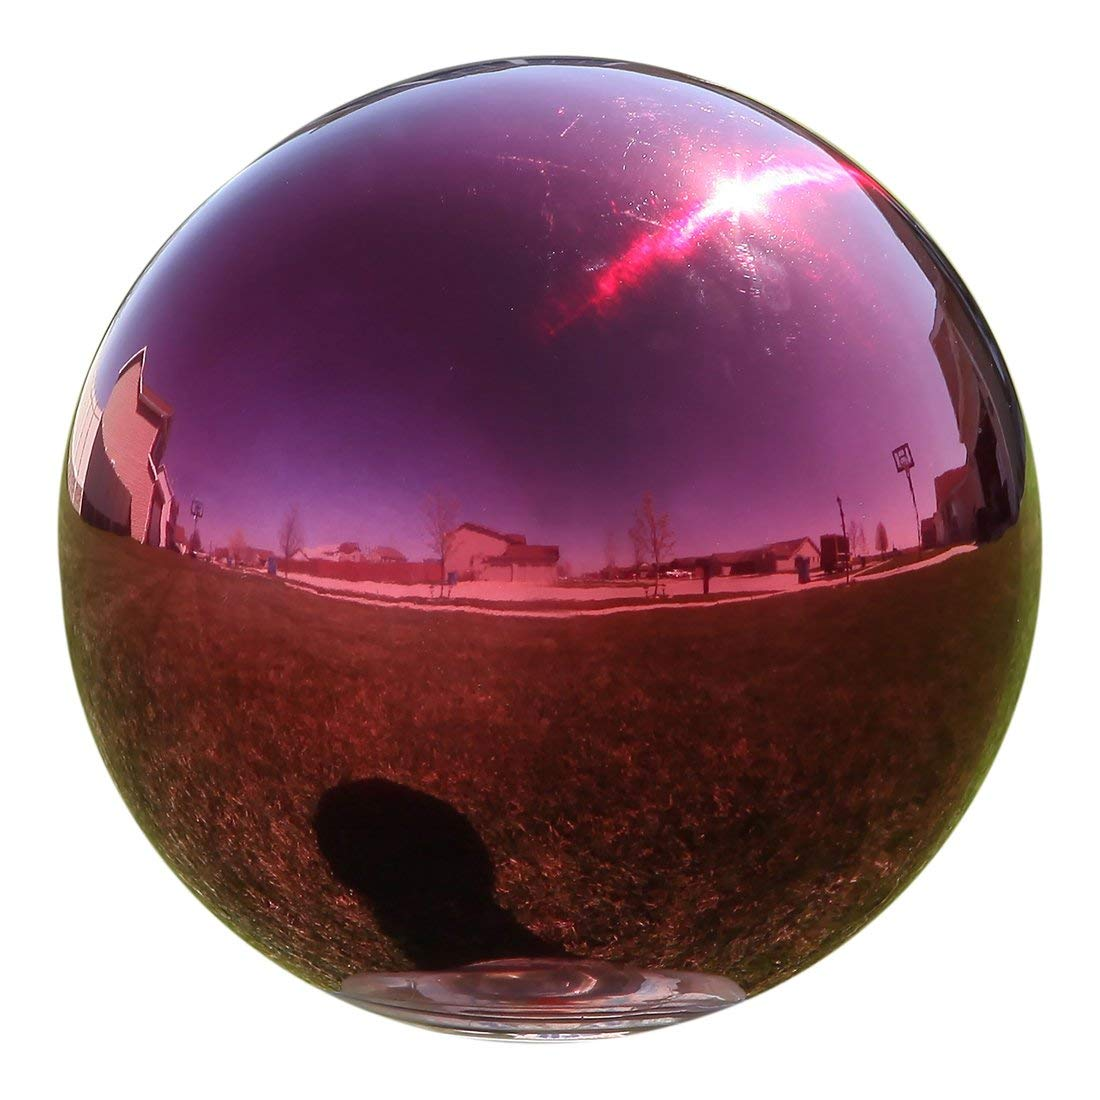 Kanff Gazing Ball Durable Stainless Steel Red Ball, Home Gazing Globe Mirror Ball in Red Stainless Steel (10 INCH)